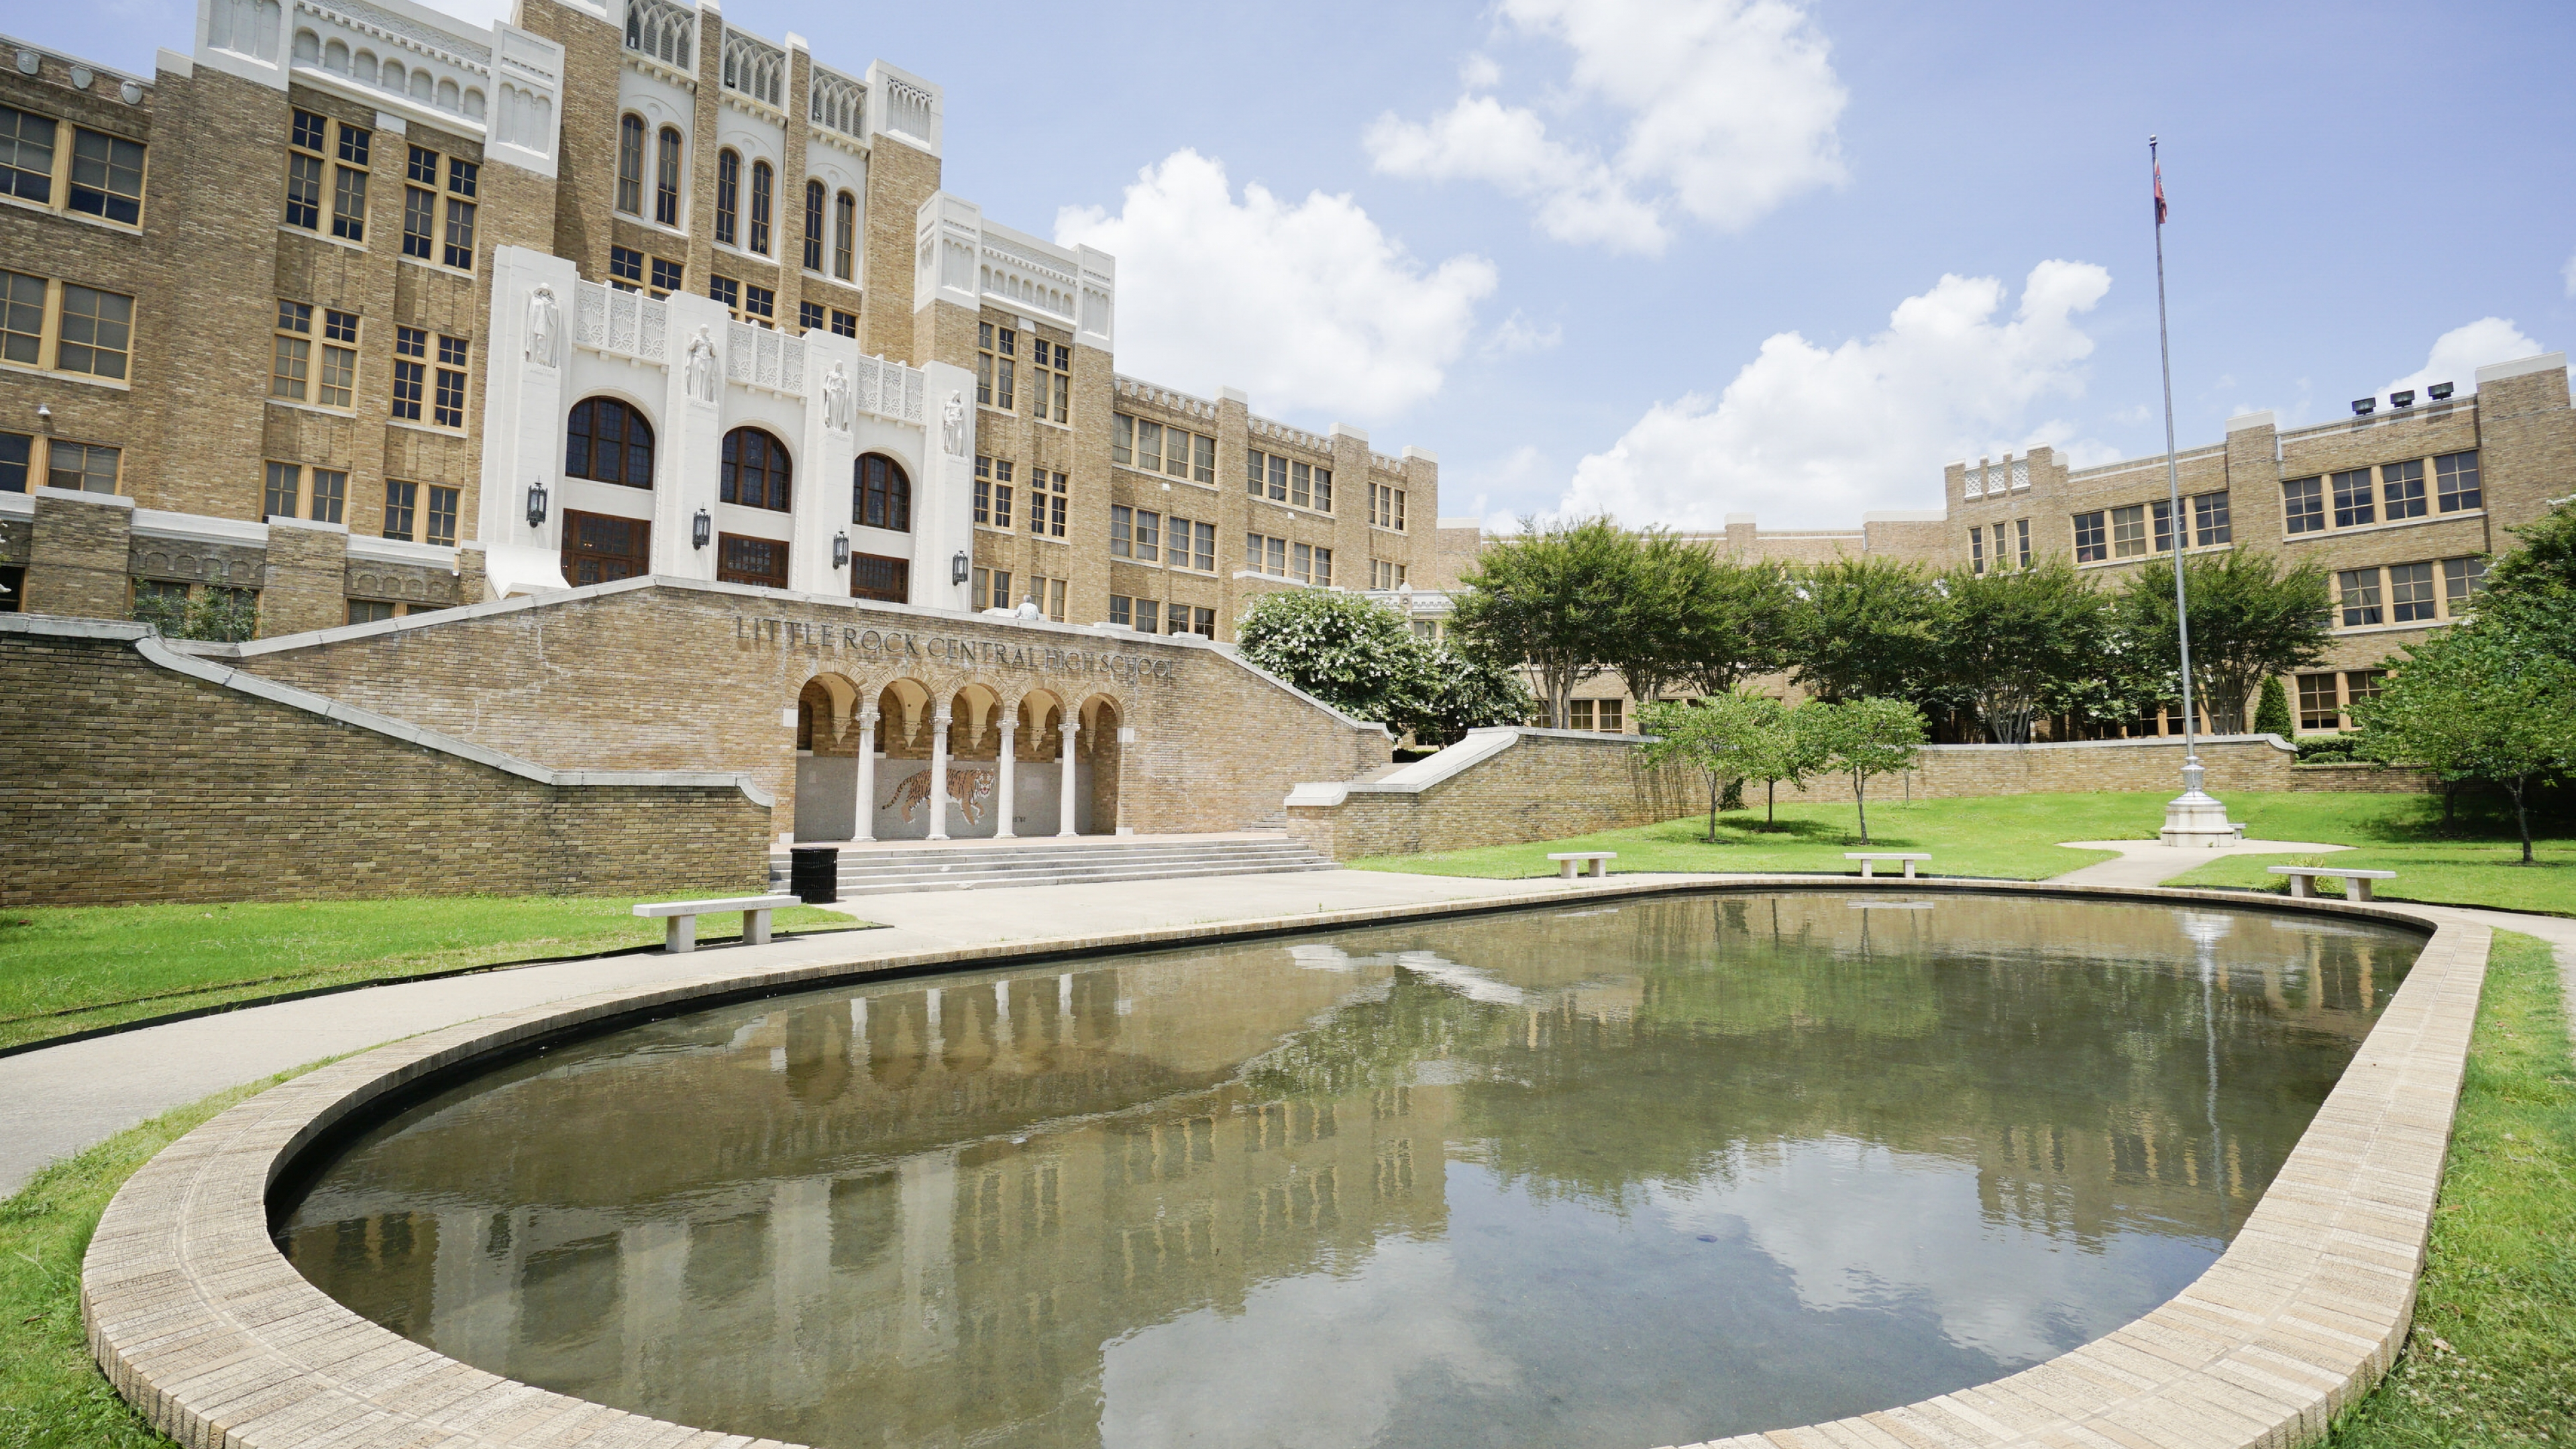 The brick and concrete buildings of Little Rock Central High School National Historic Site behind a big pool reflecting pool